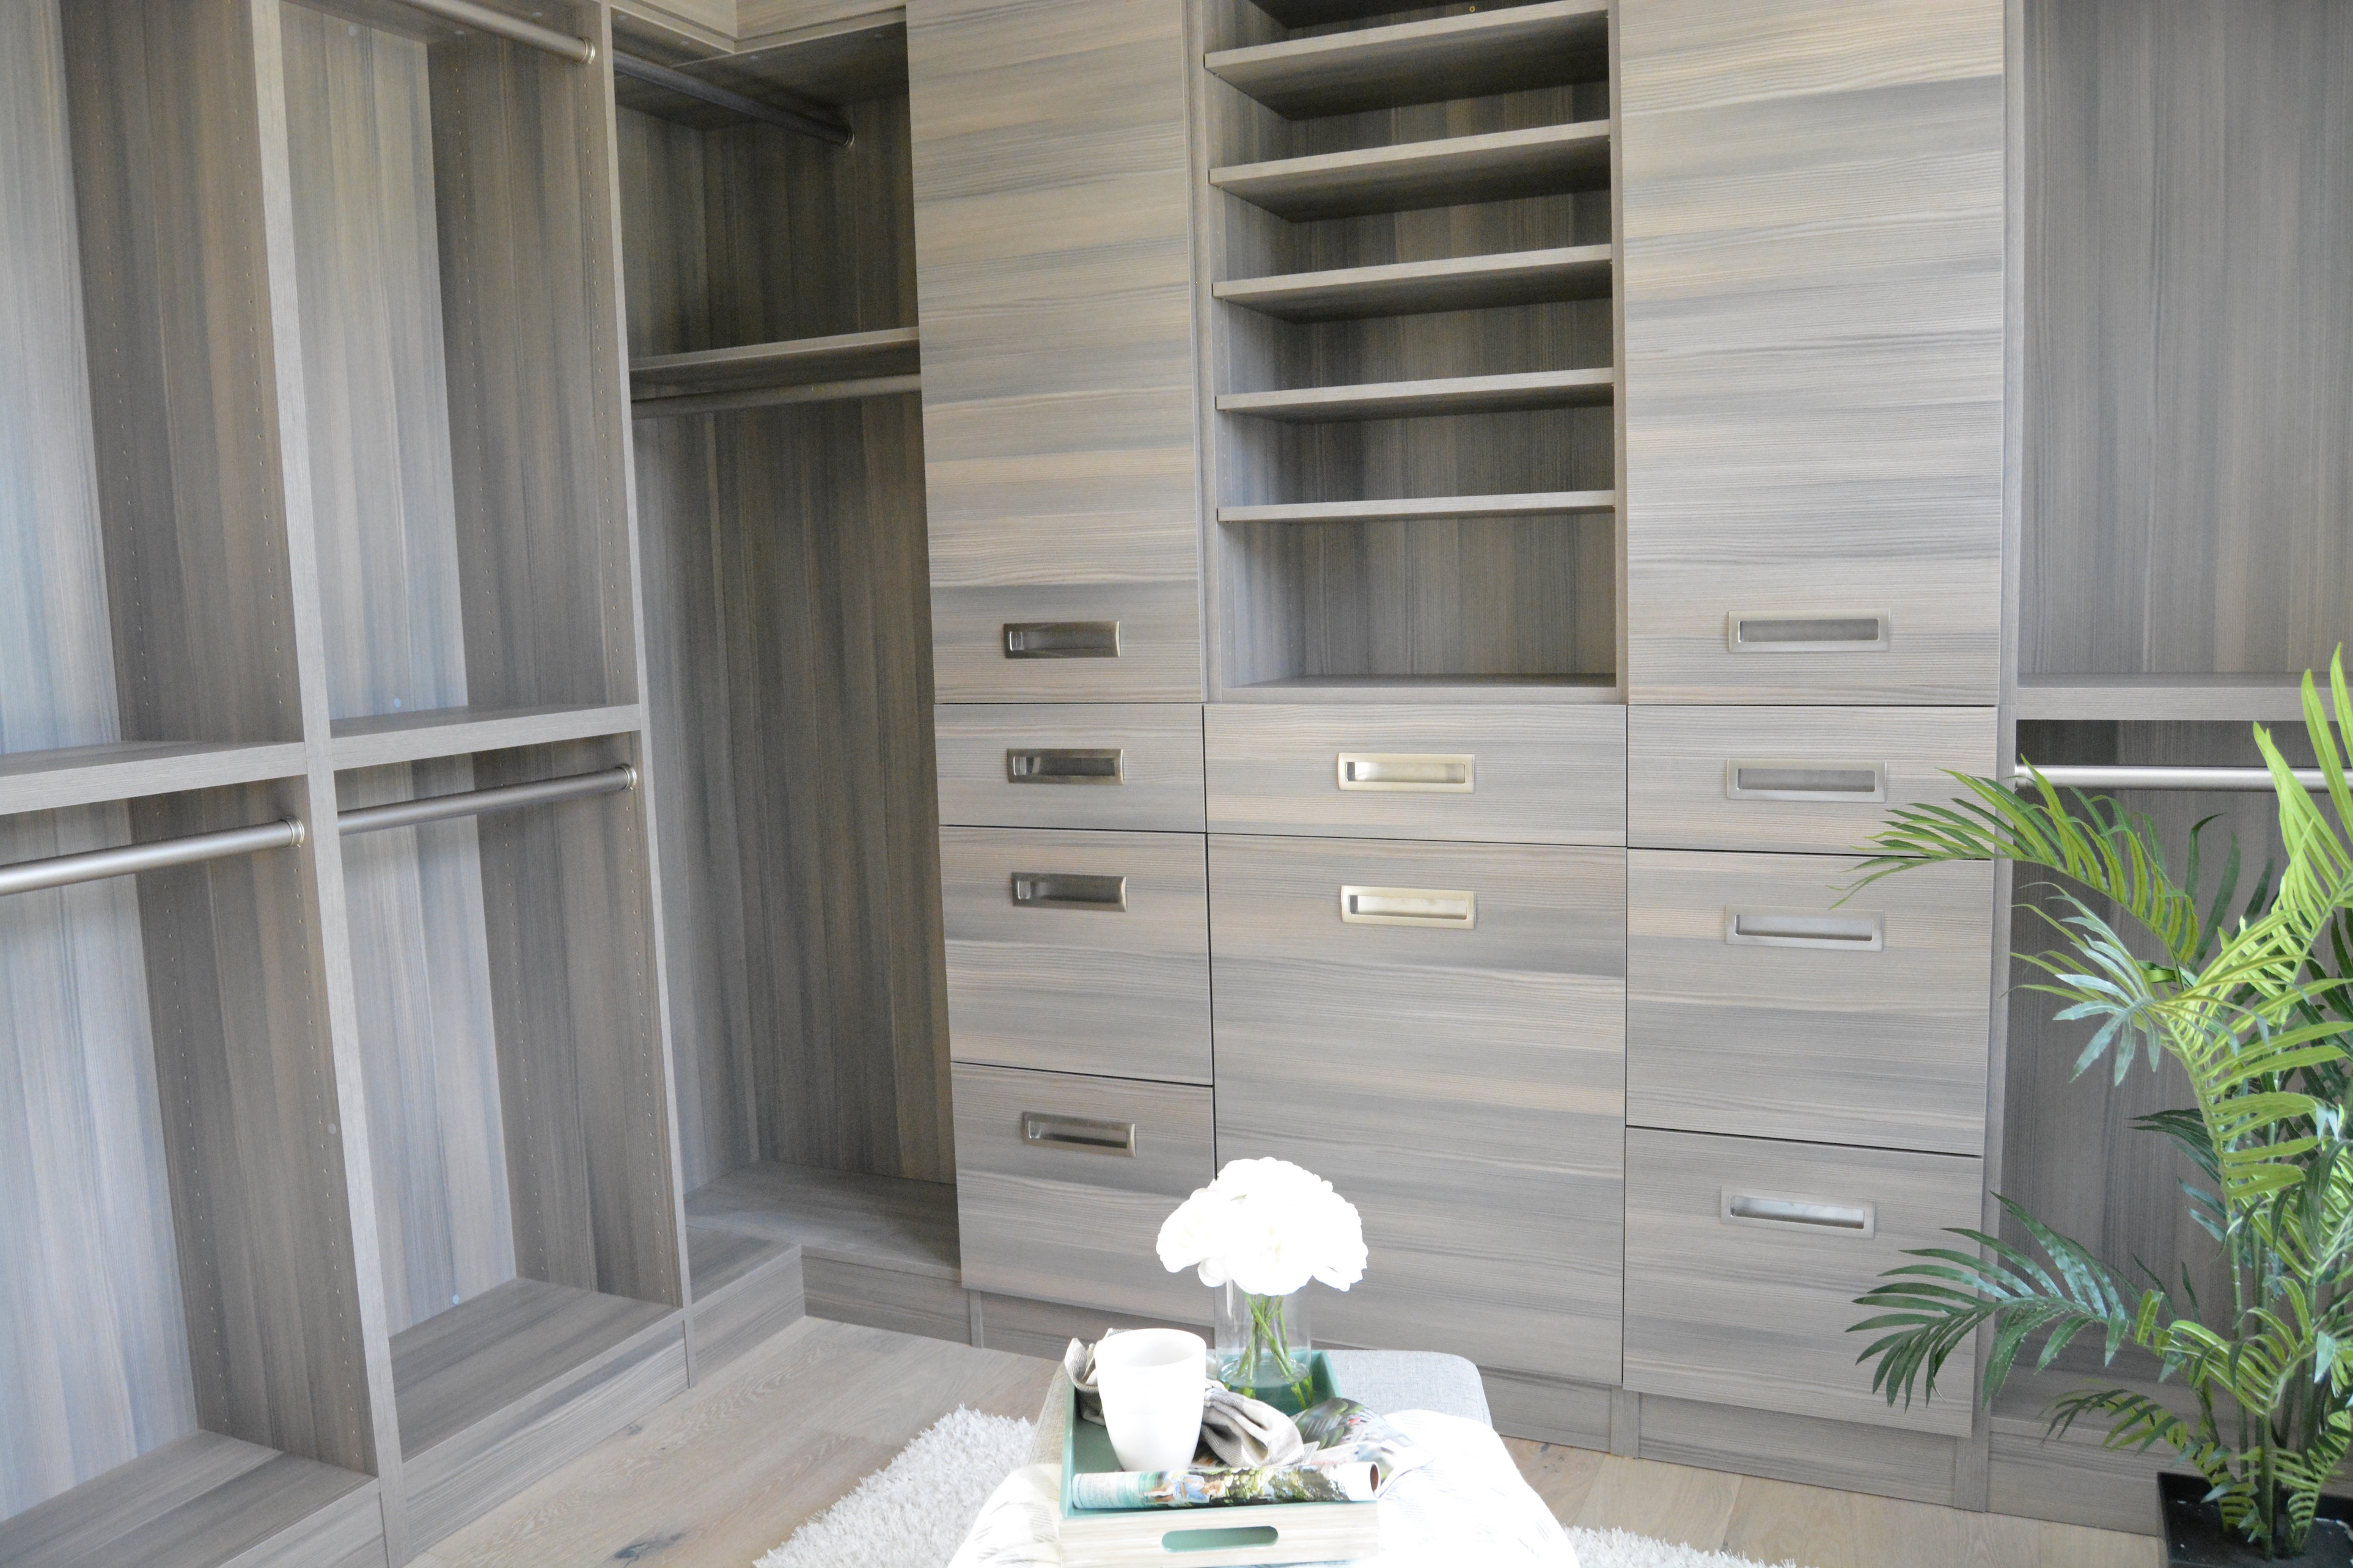 Walk In Closet Built Ins Hardwood Floors Gray Flat Panel